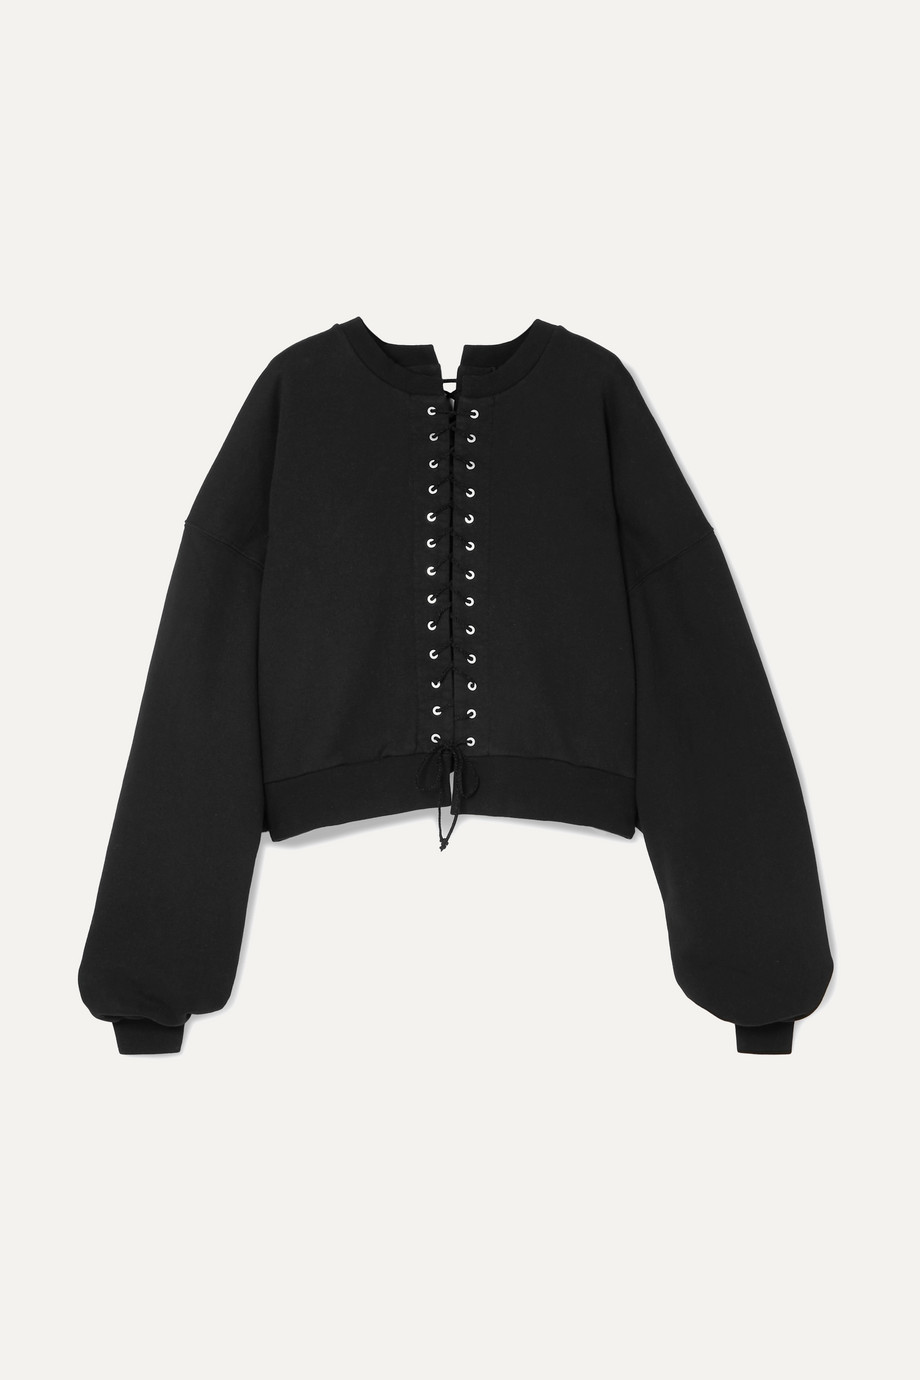 Exact Product: Hailey Baldwin Black Oversized Jumper 2019, Brand: Unravel Project, Available on: net-a-porter.com, Price: $645